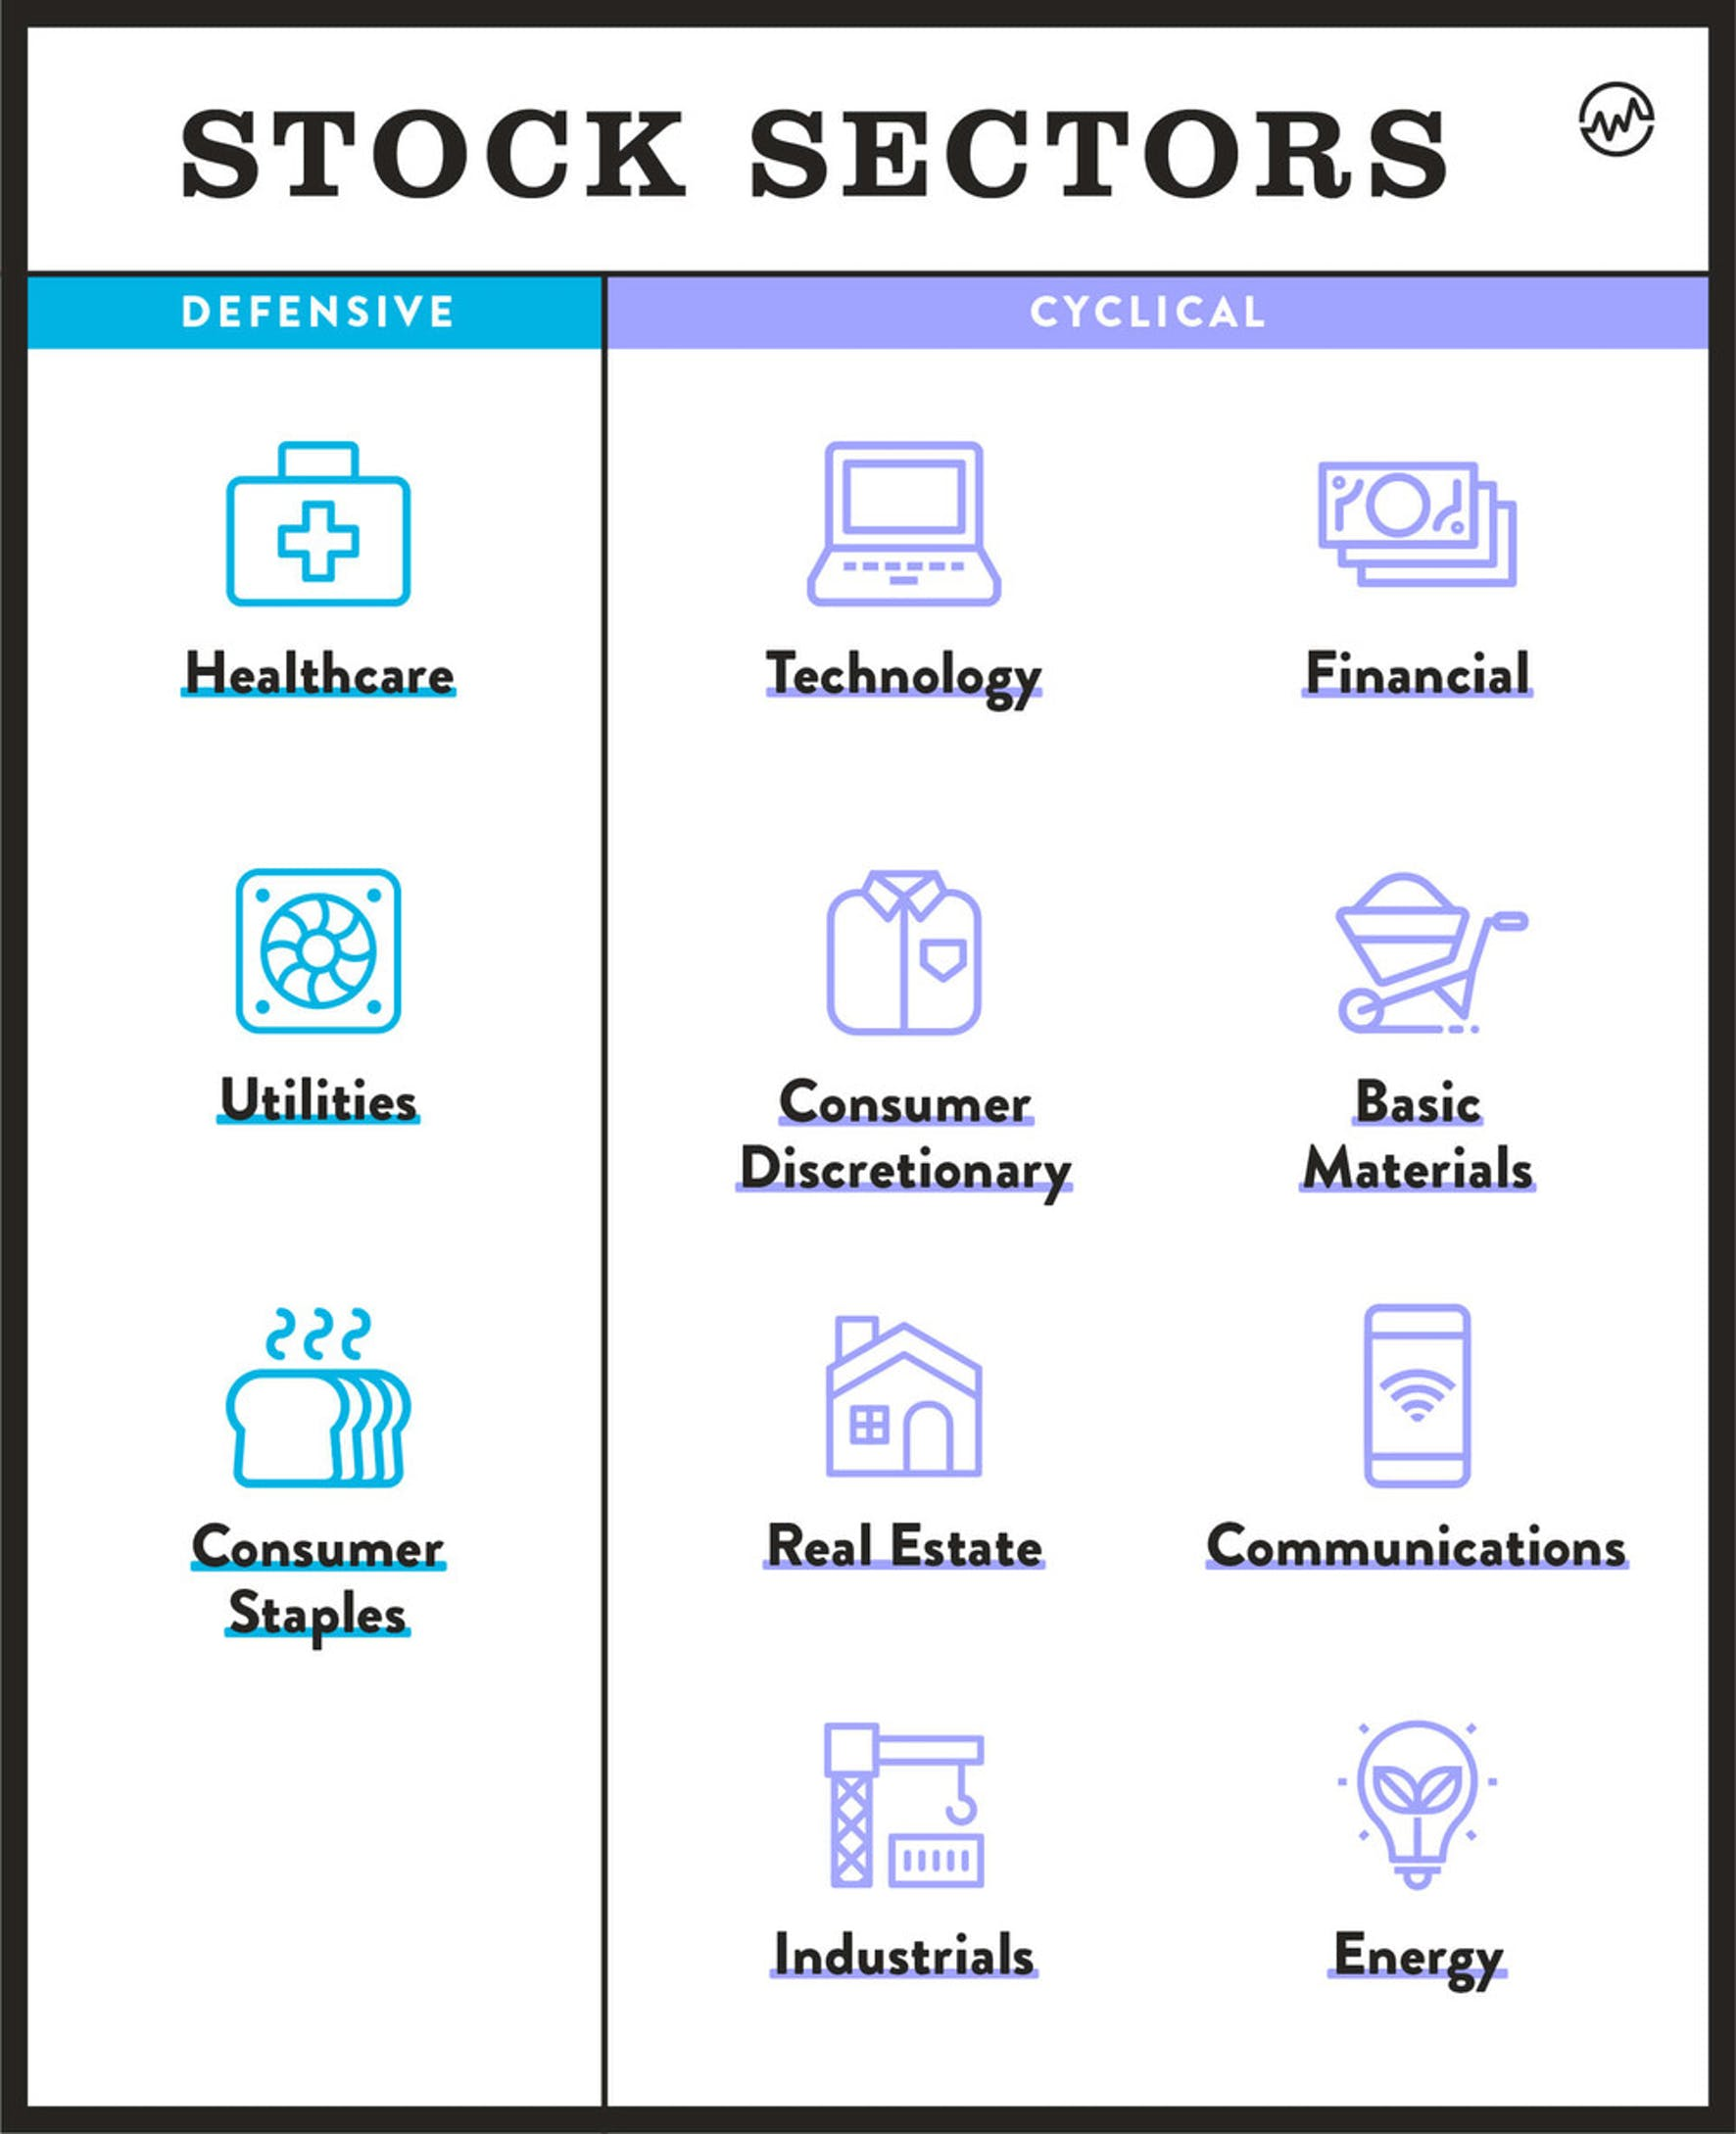 Defensive and cyclical stock sectors categorized in a blue and purple infographic